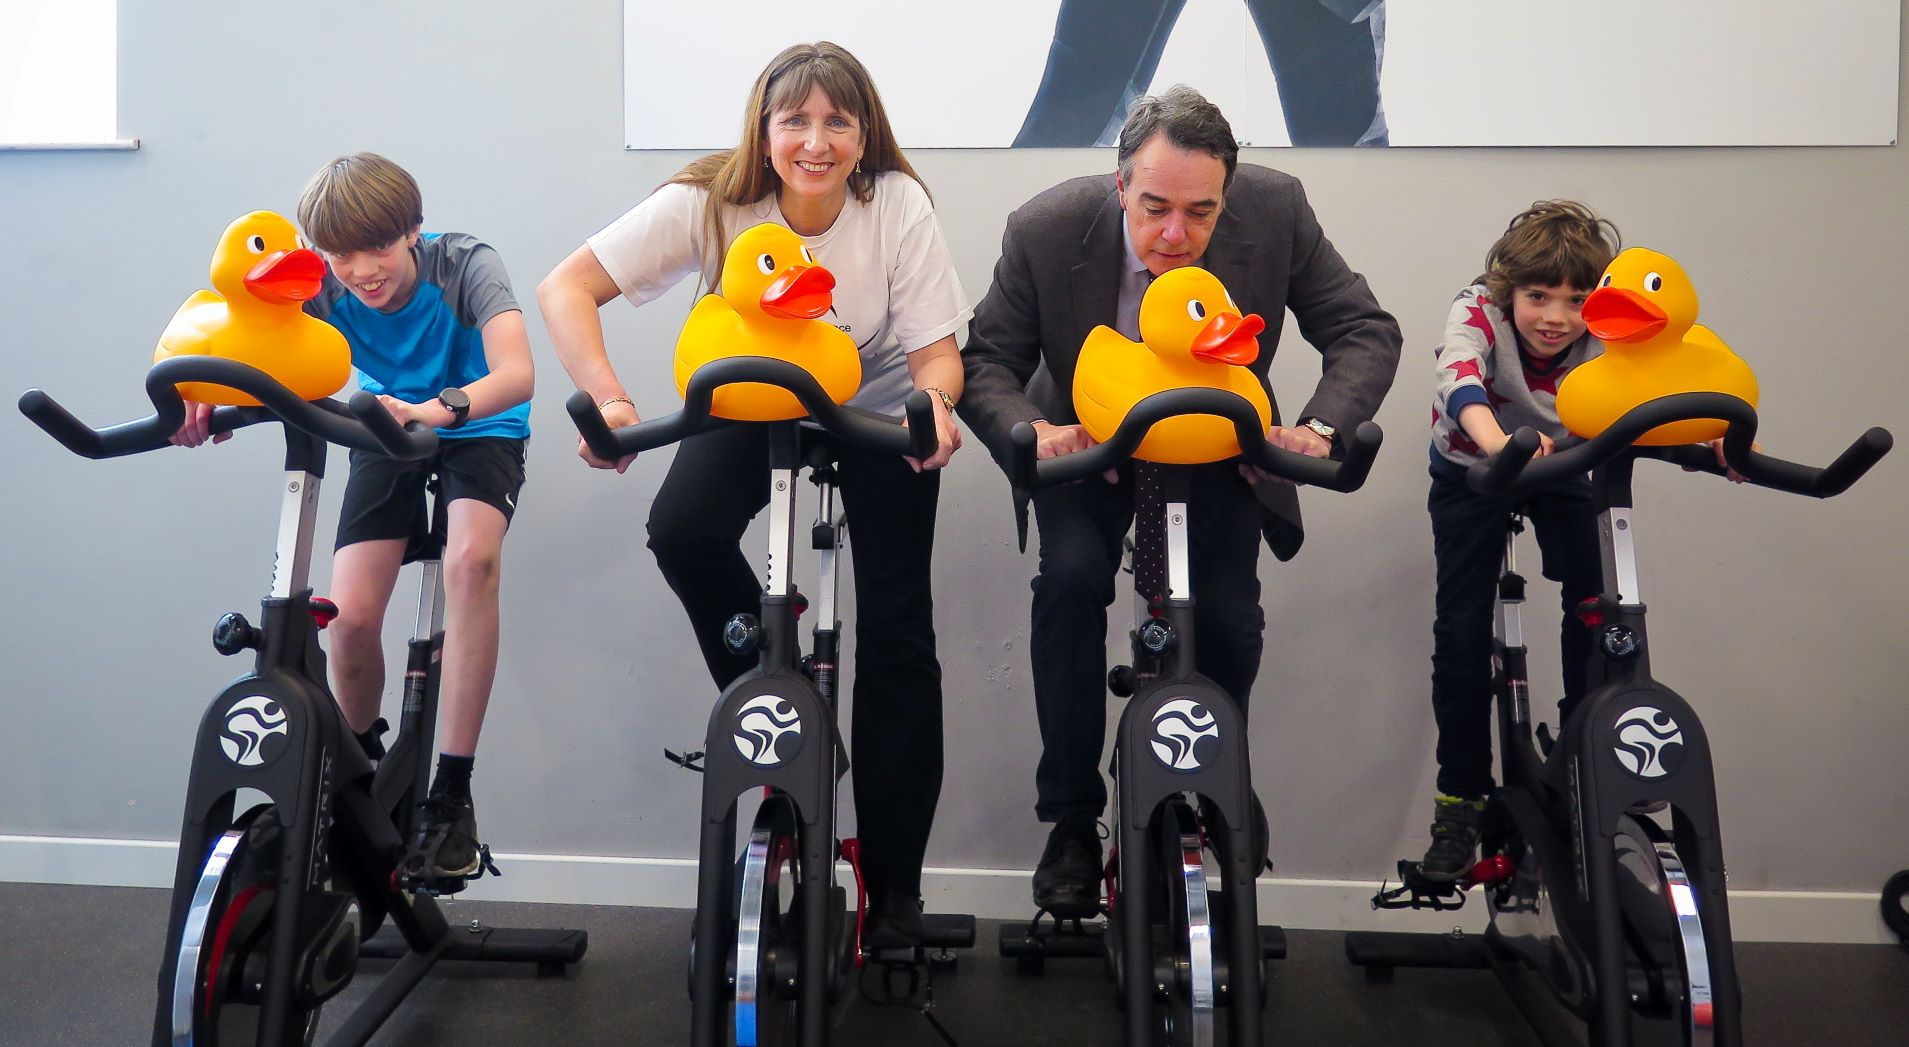 4 giant plastic ducks on top of 4 static bikes, pedalled by Oscar Burgess, Lynda Raven, Simon Leaf and Otis Burgess.